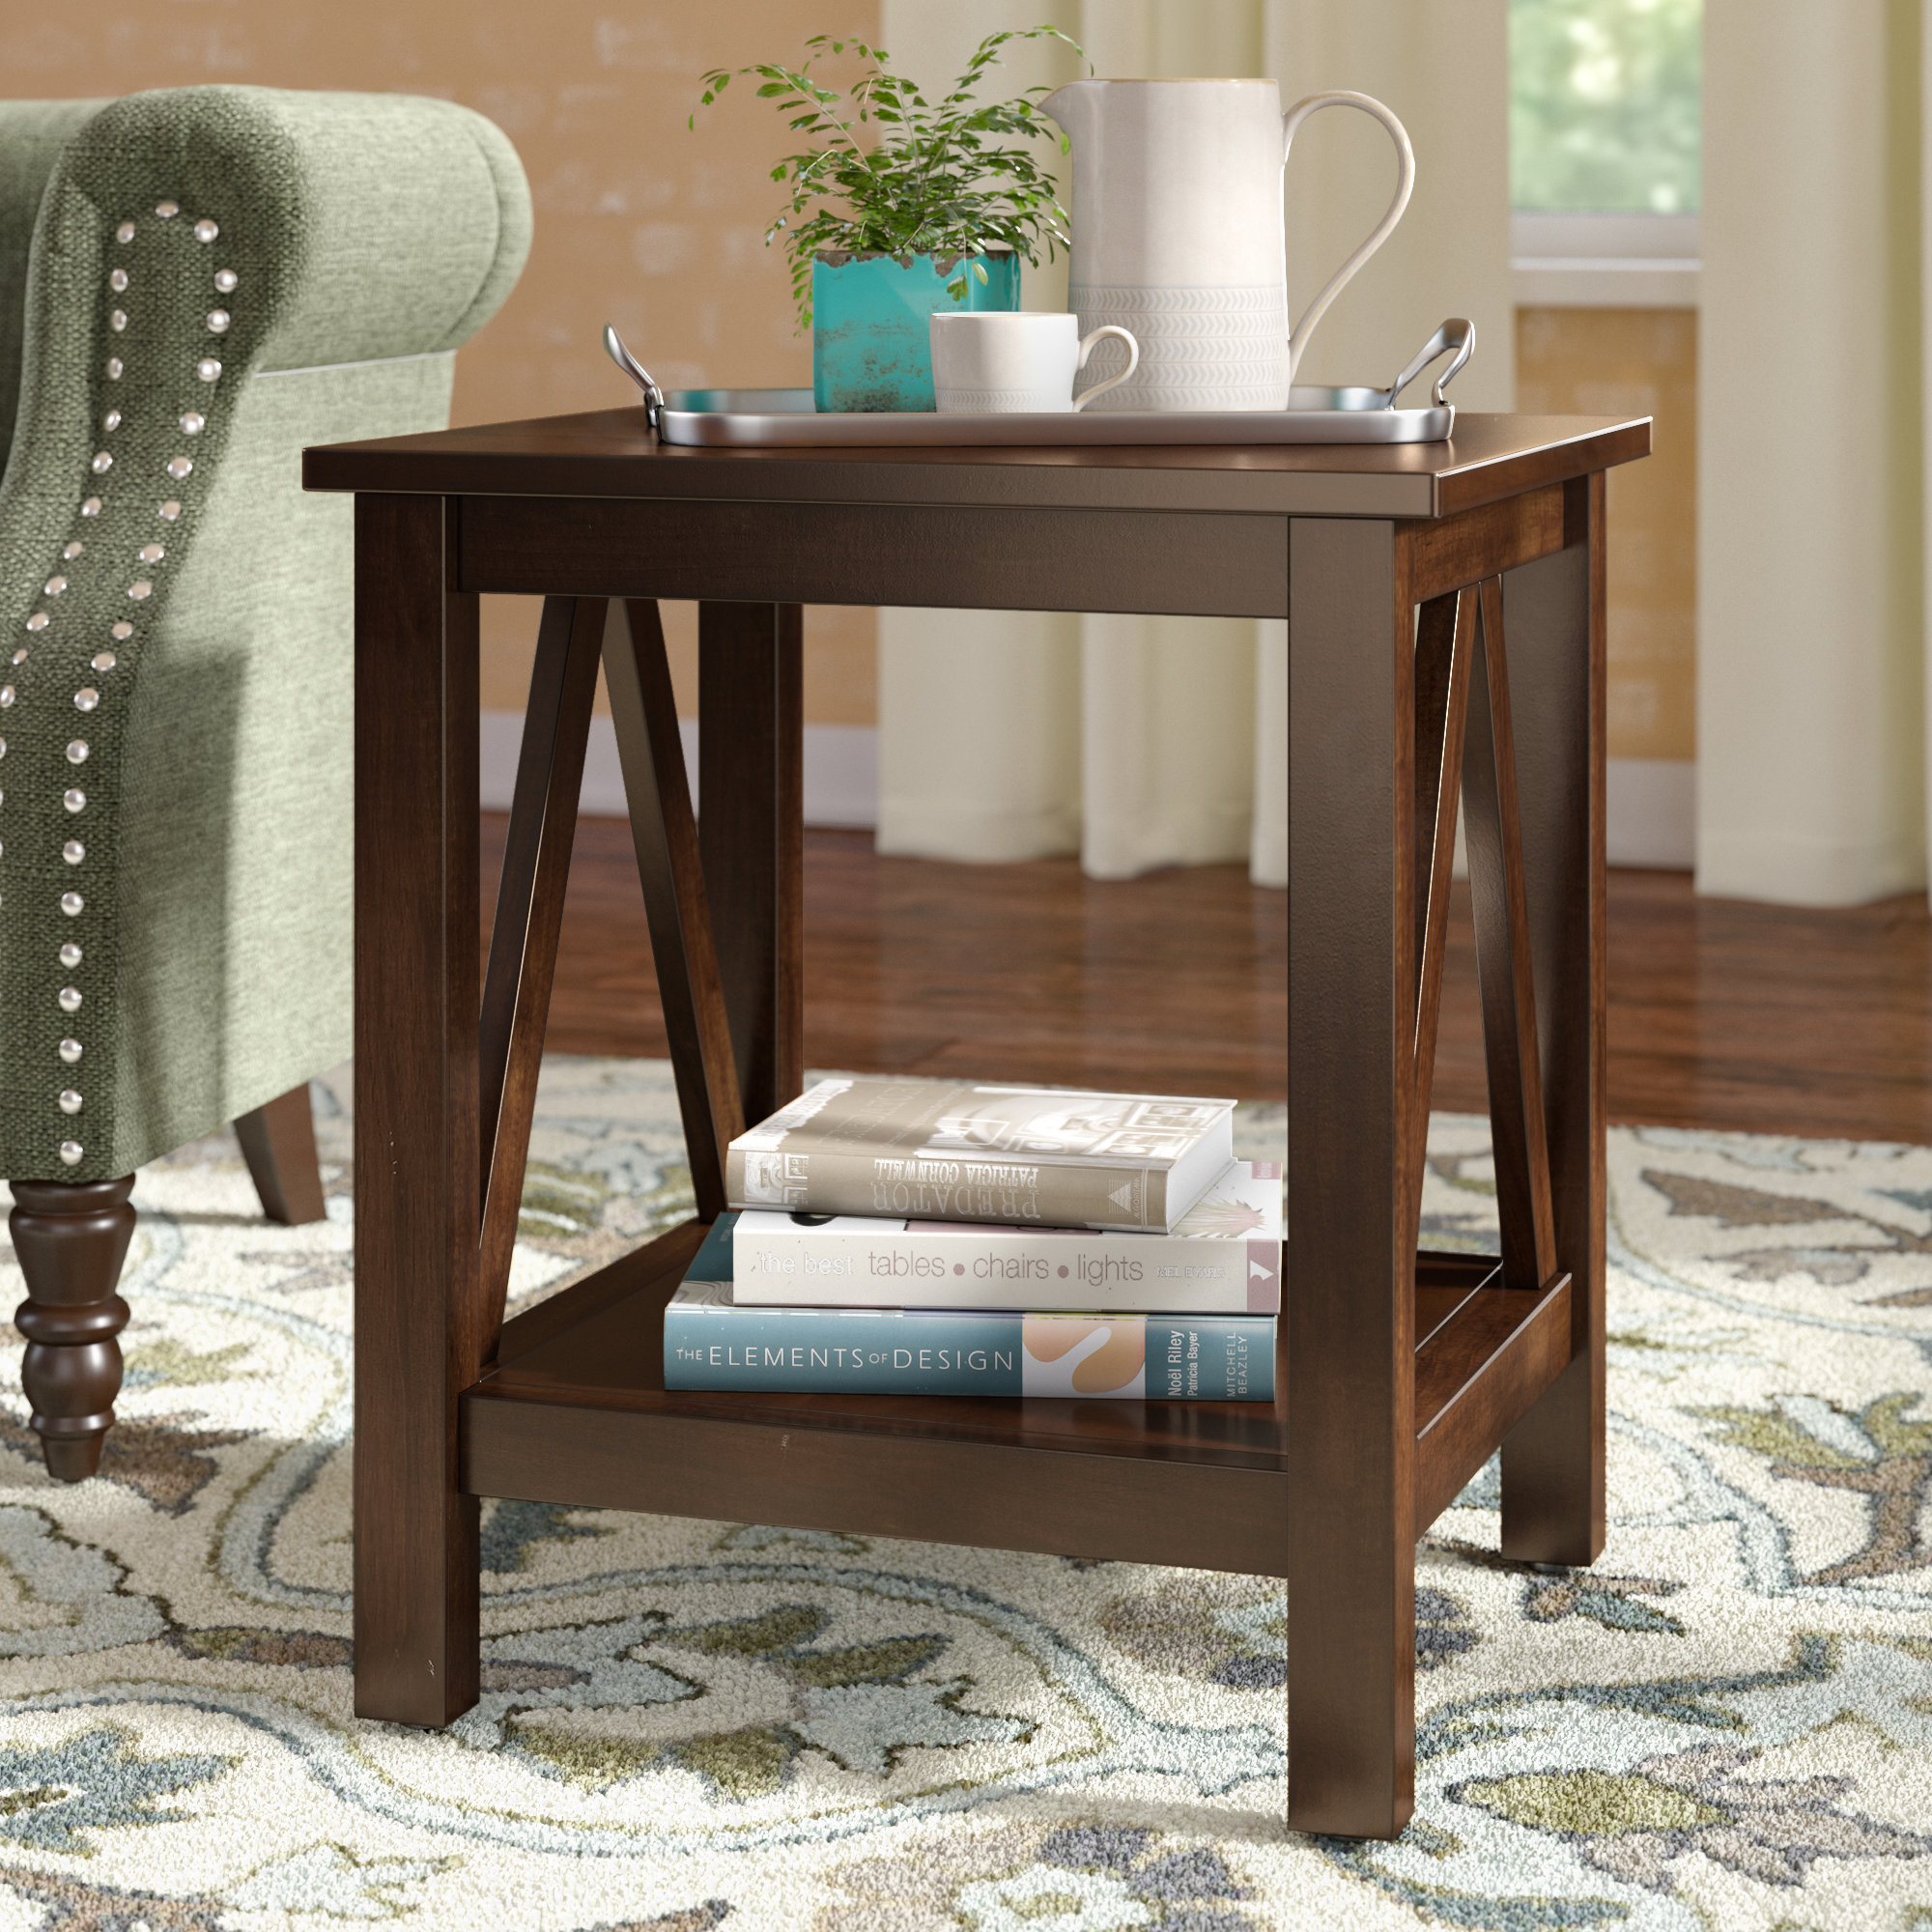 brass and glass end table wood tables broyhill coffee with storage accent rectangular dining base summerhill outdoor furniture thomasville allegro queen anne ethan allen skirt